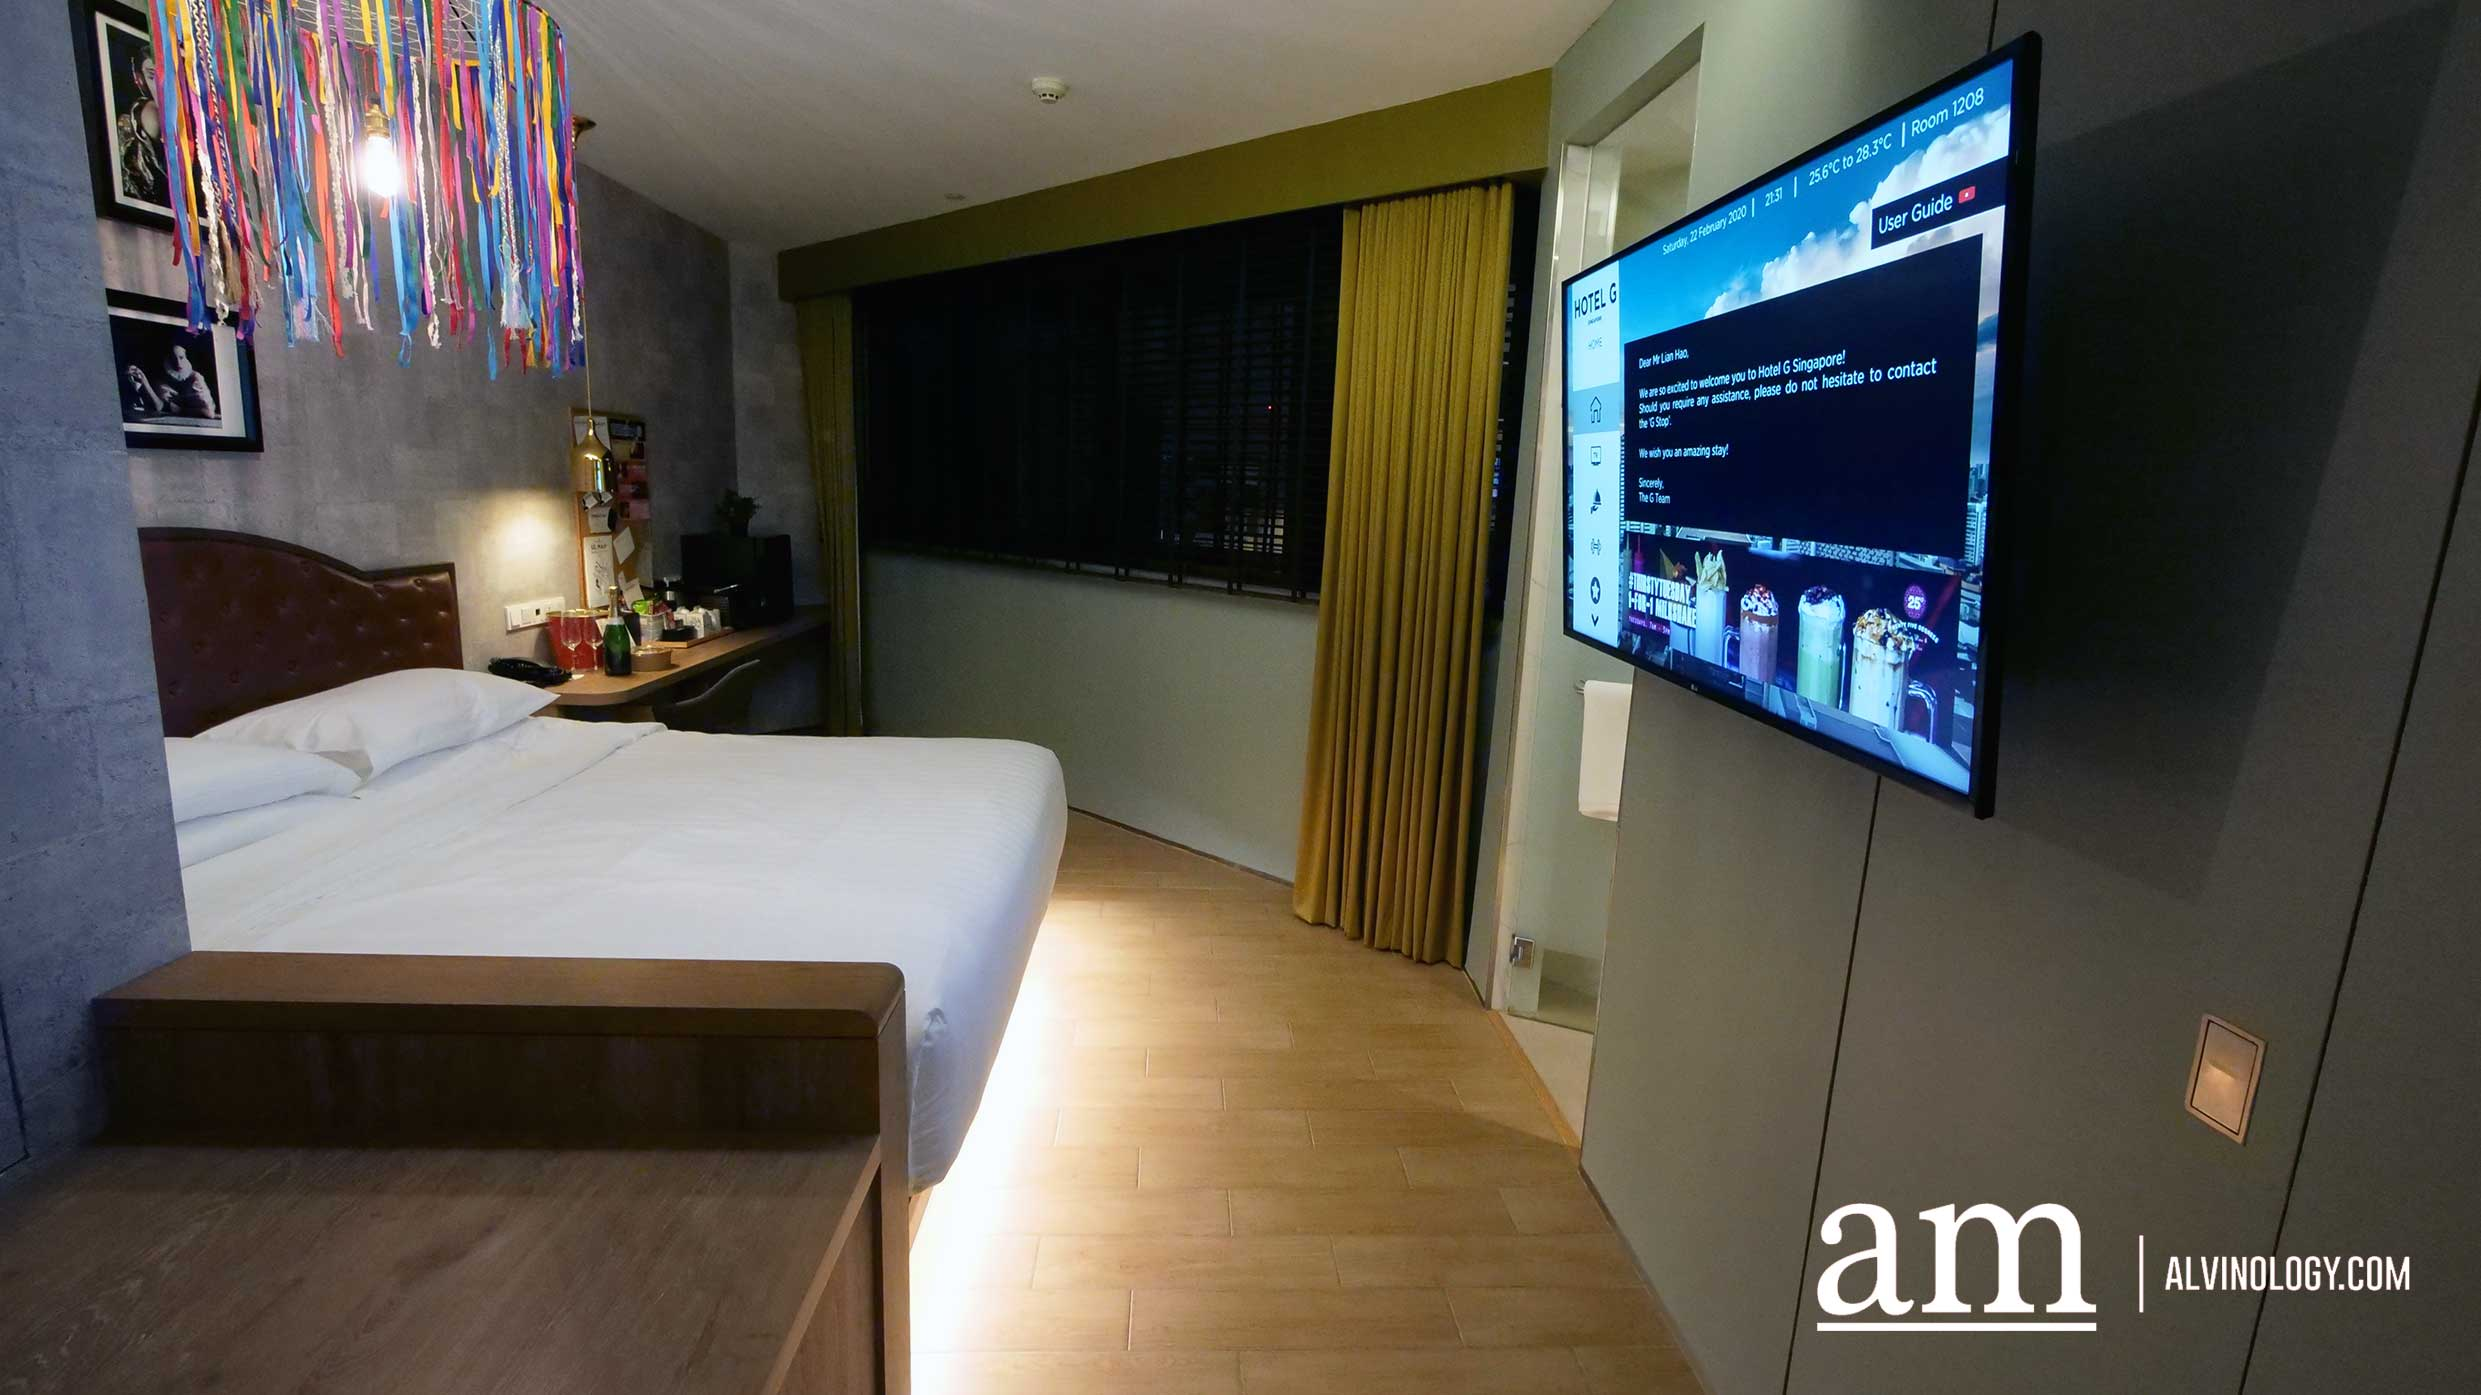 [Promo Code] Staycation Review - Have a POPPIN' GOOD TIME at Hotel G Singapore - Alvinology